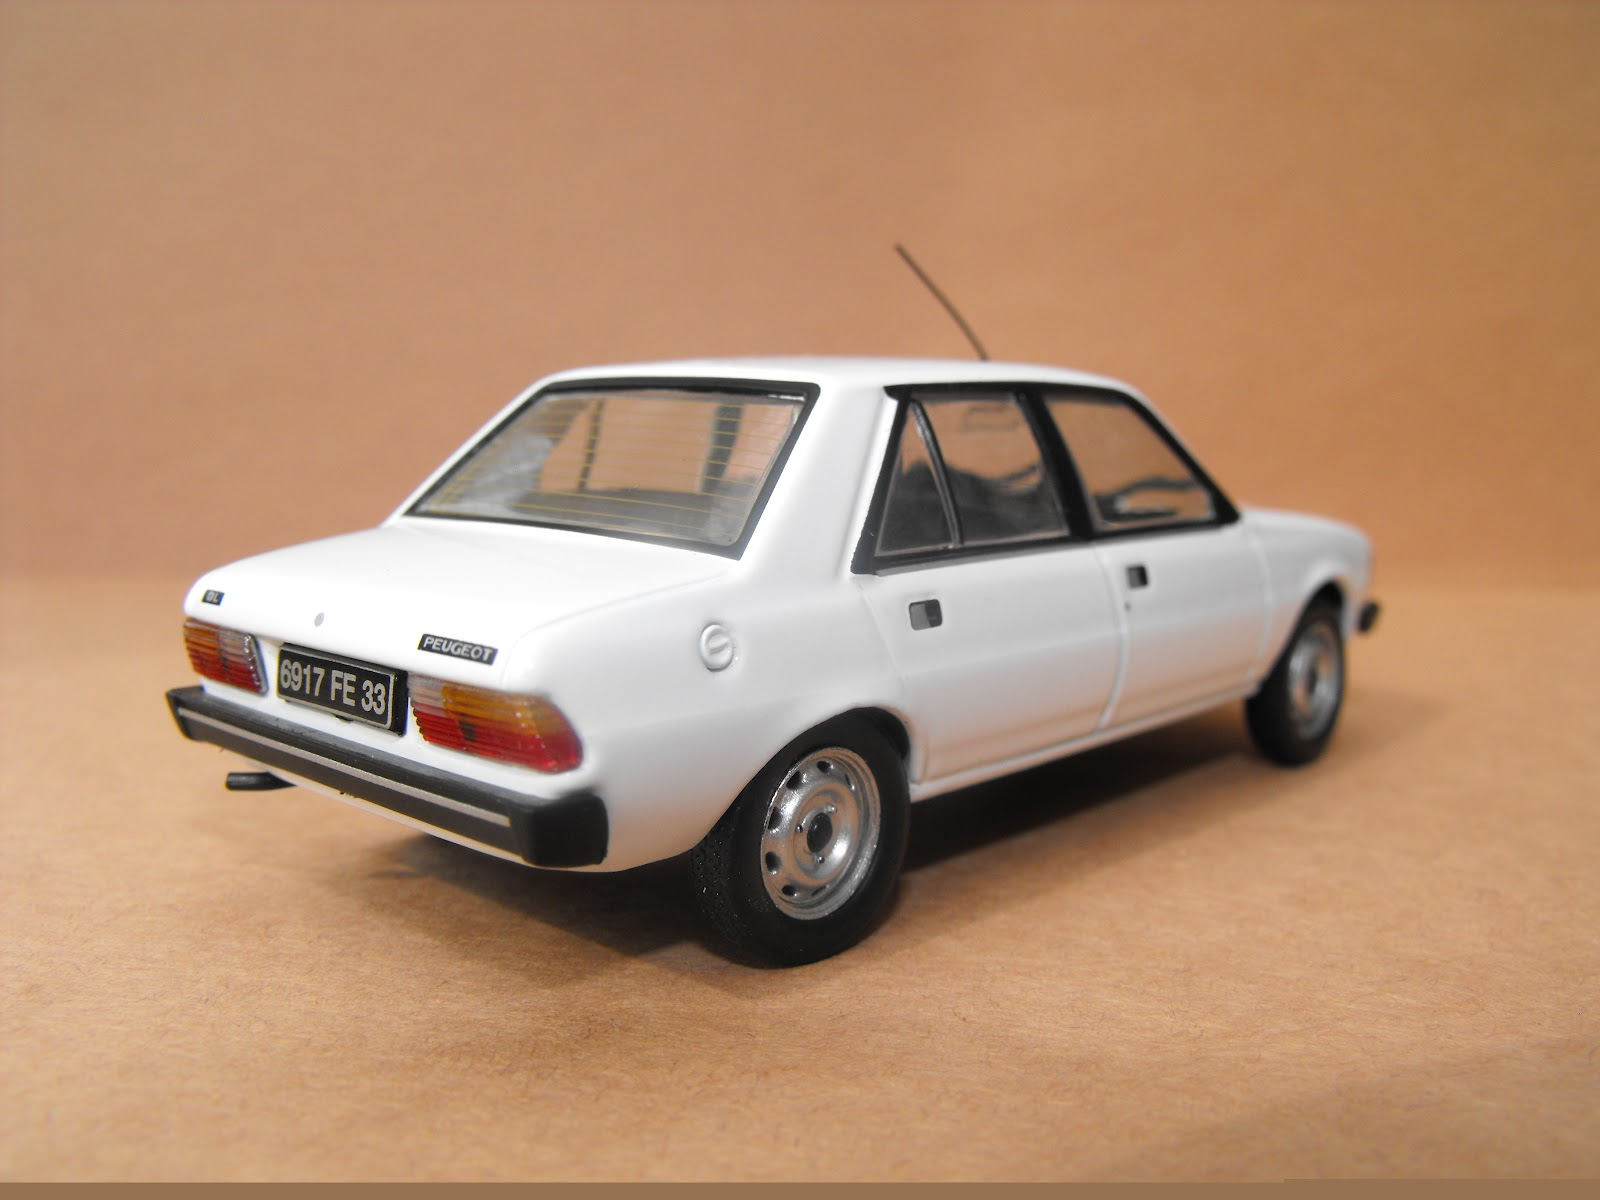 305 s successor was the peugeot 309 click here